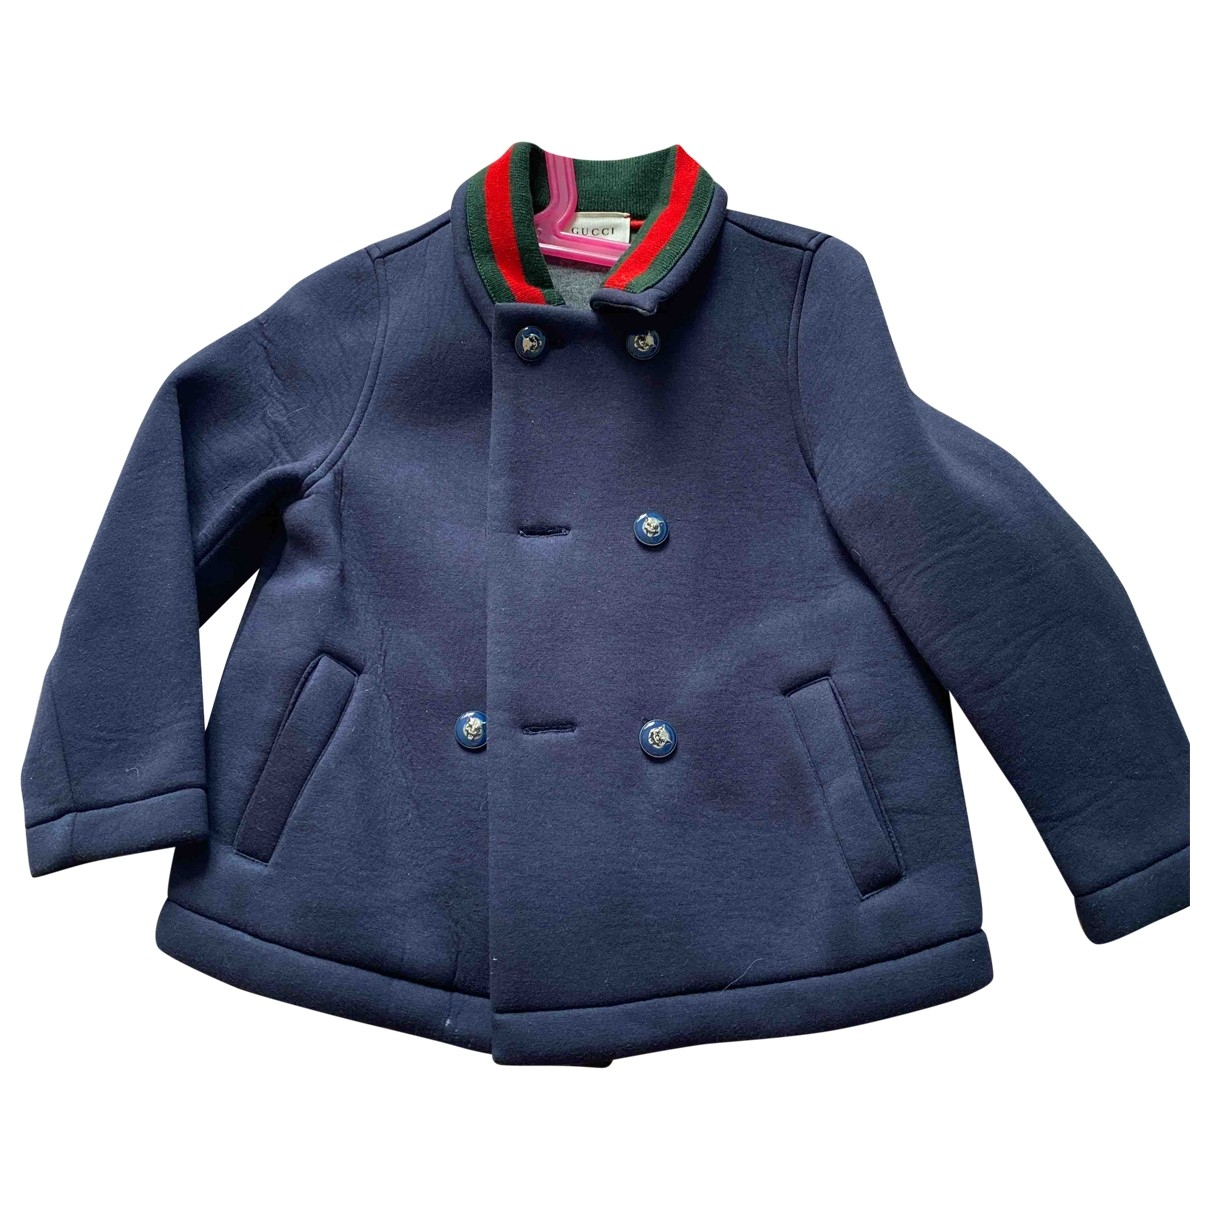 Gucci \N Blue jacket & coat for Kids 3 years - until 39 inches UK